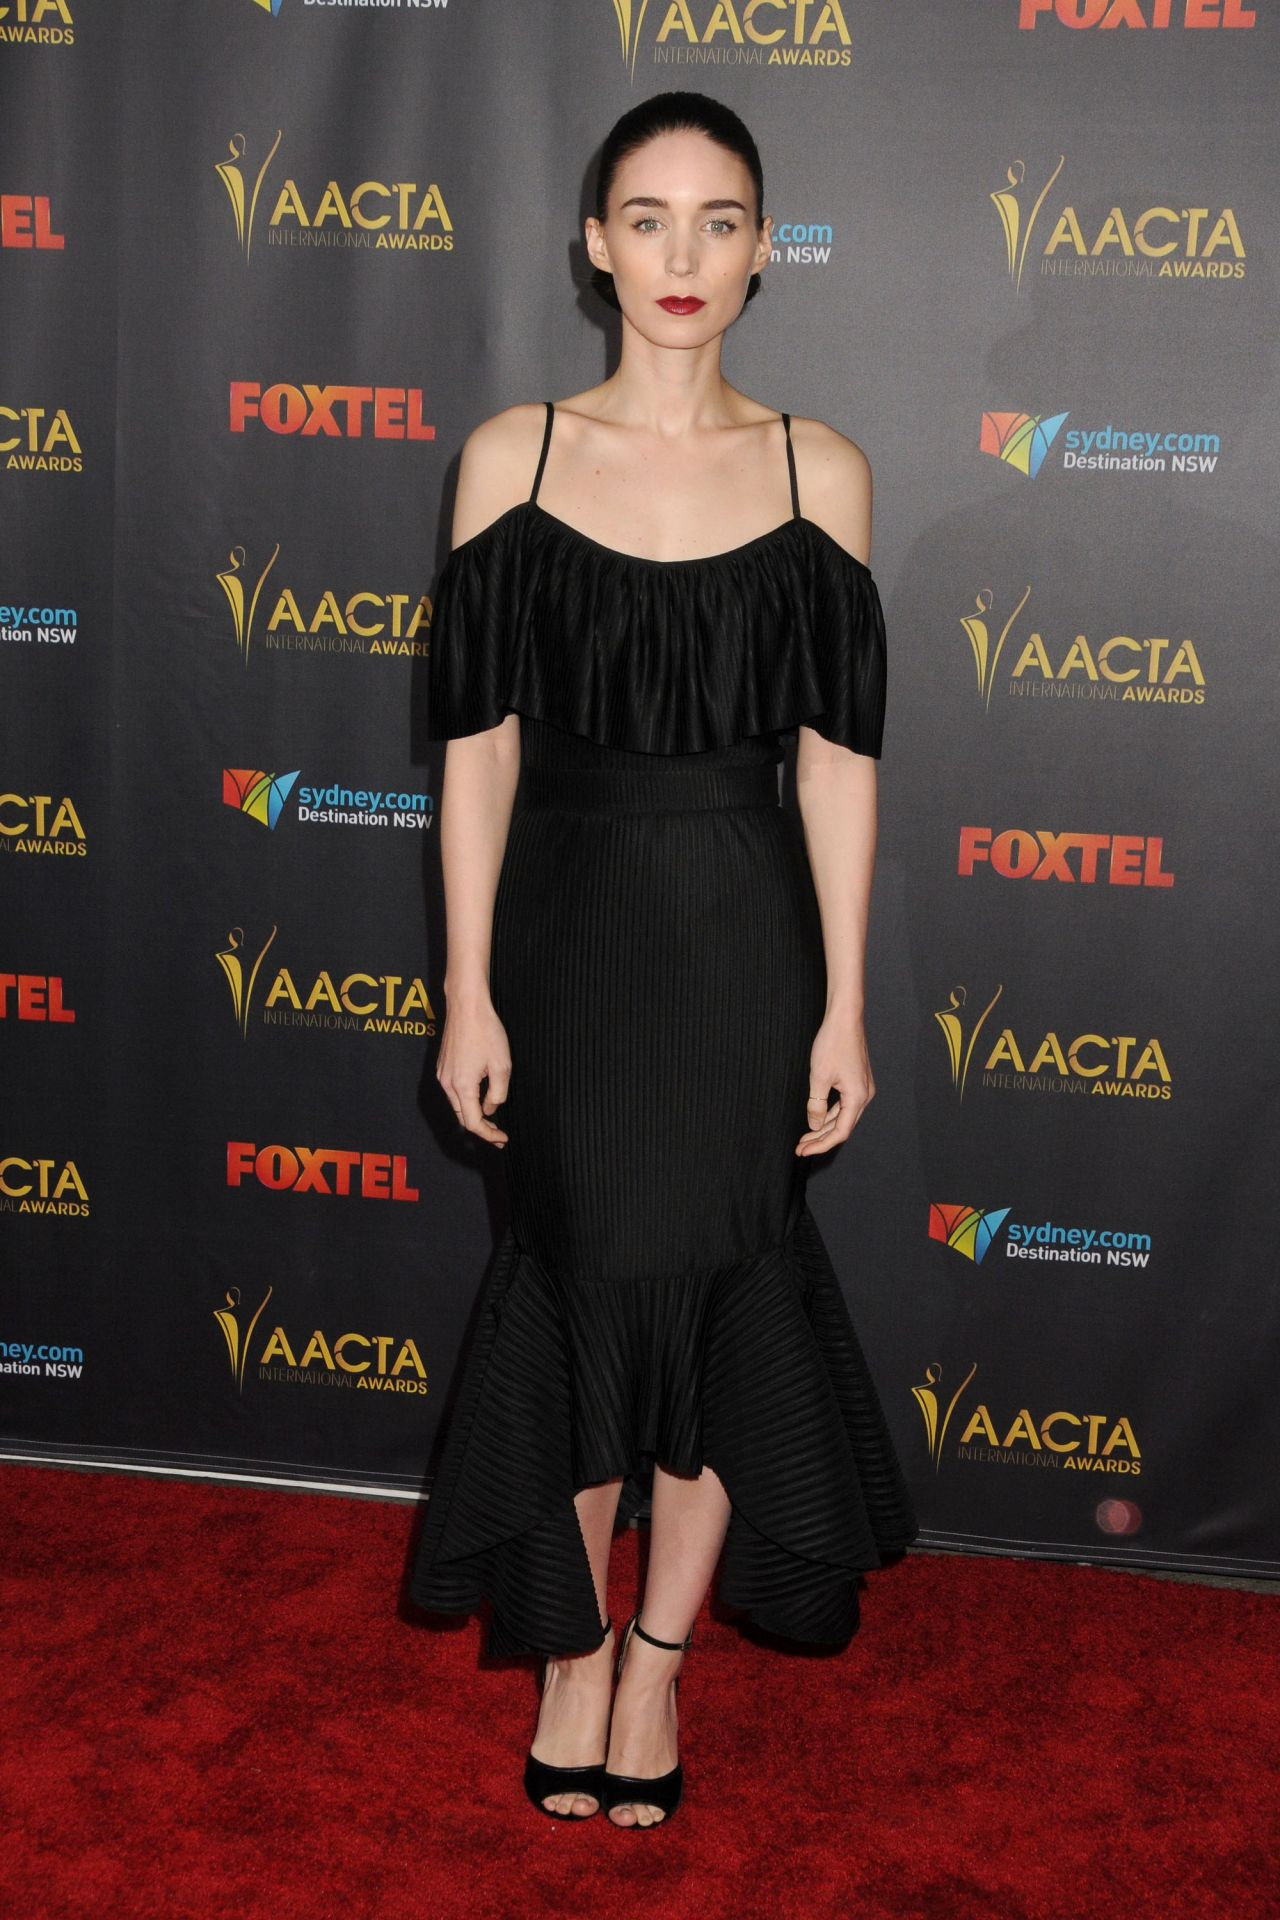 rooney-mara-2016-aacta-international-awards-ceremony-in-los-angeles-1